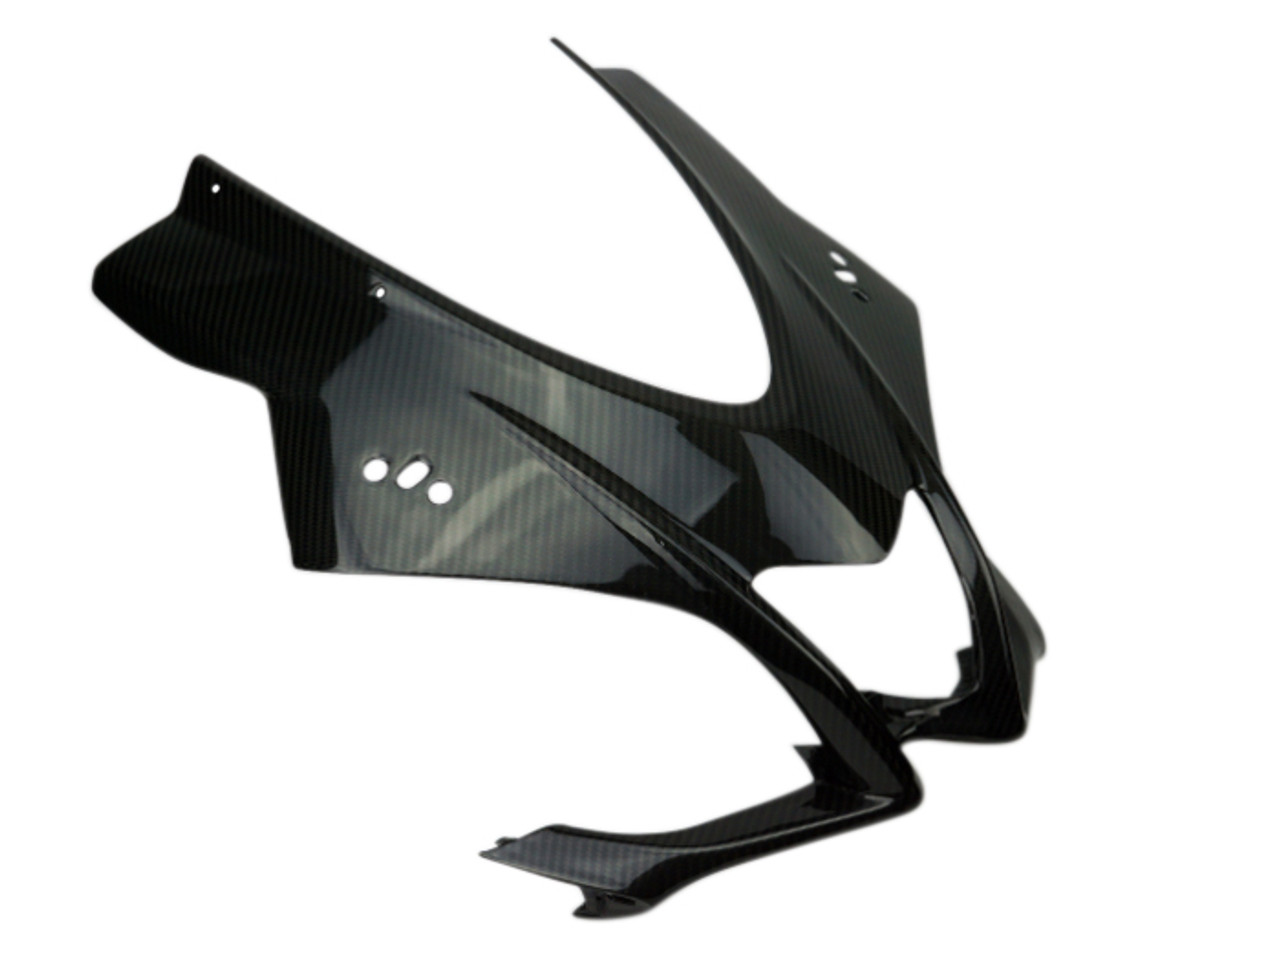 Front Fairing in Glossy Twill Weave Carbon Fiber for Aprilia RSV4 2016+